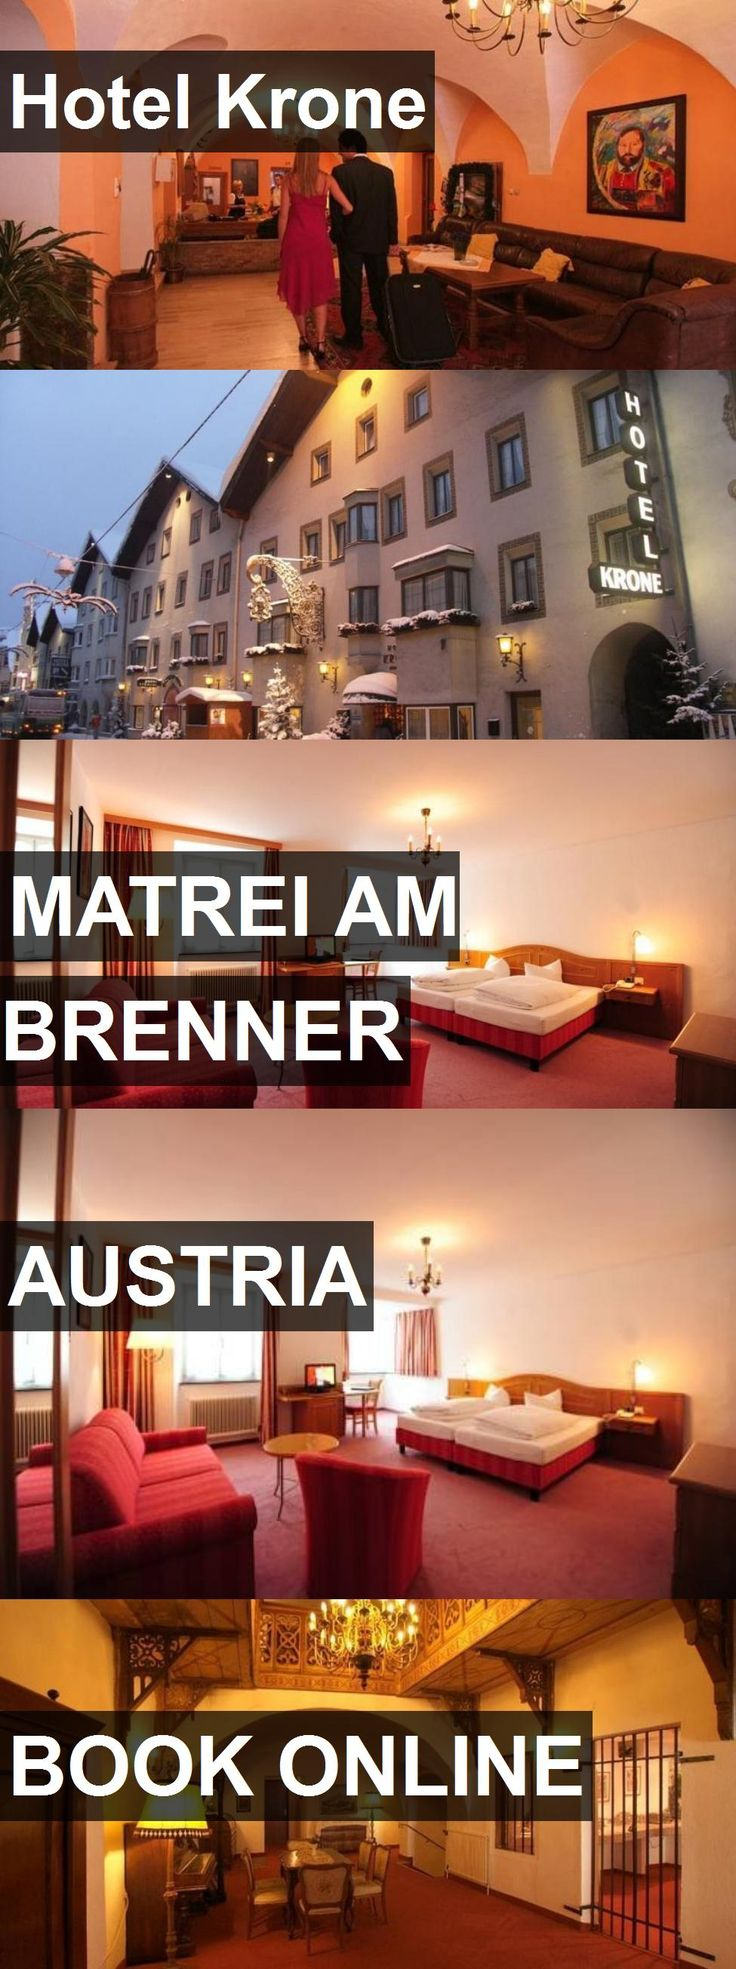 Hotel Krone in Matrei am Brenner, Austria. For more information, photos, reviews and best prices please follow the link. #Austria #MatreiamBrenner #travel #vacation #hotel